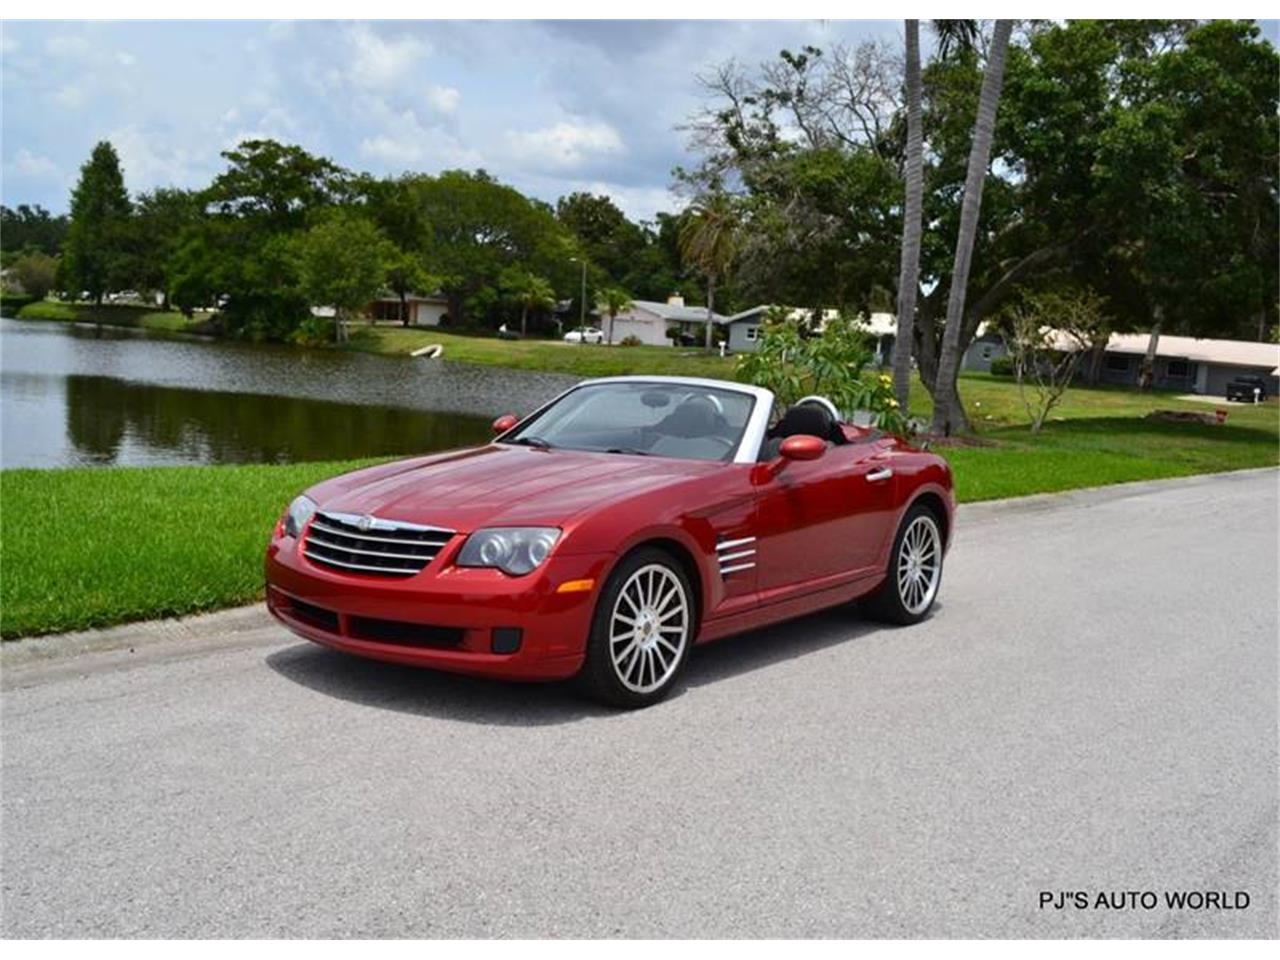 Large Picture of '05 Chrysler Crossfire - $10,900.00 Offered by PJ's Auto World - L7XM